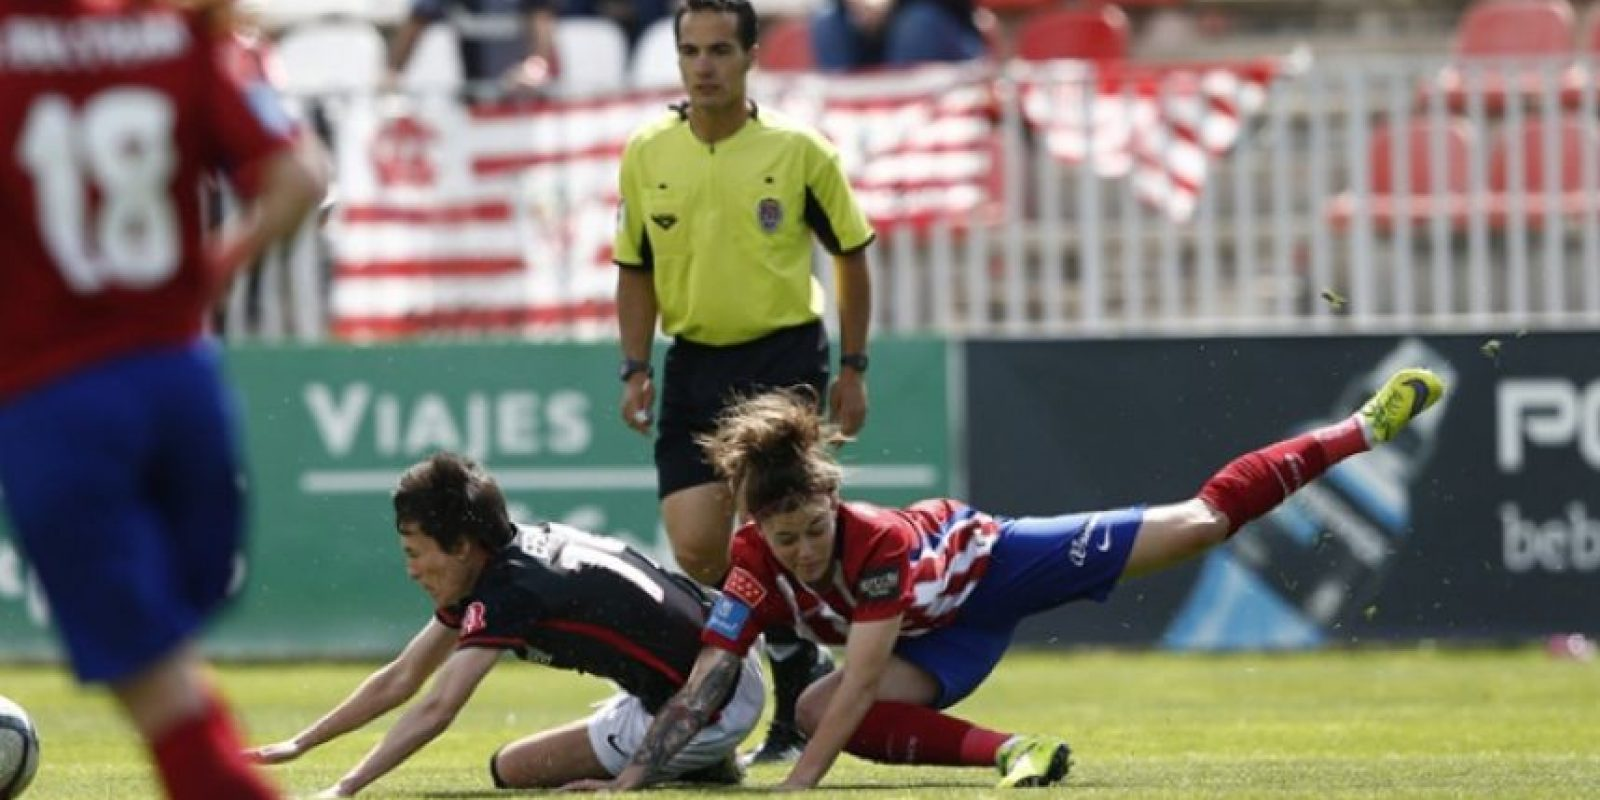 Foto: Cortesía athletic-club.eus